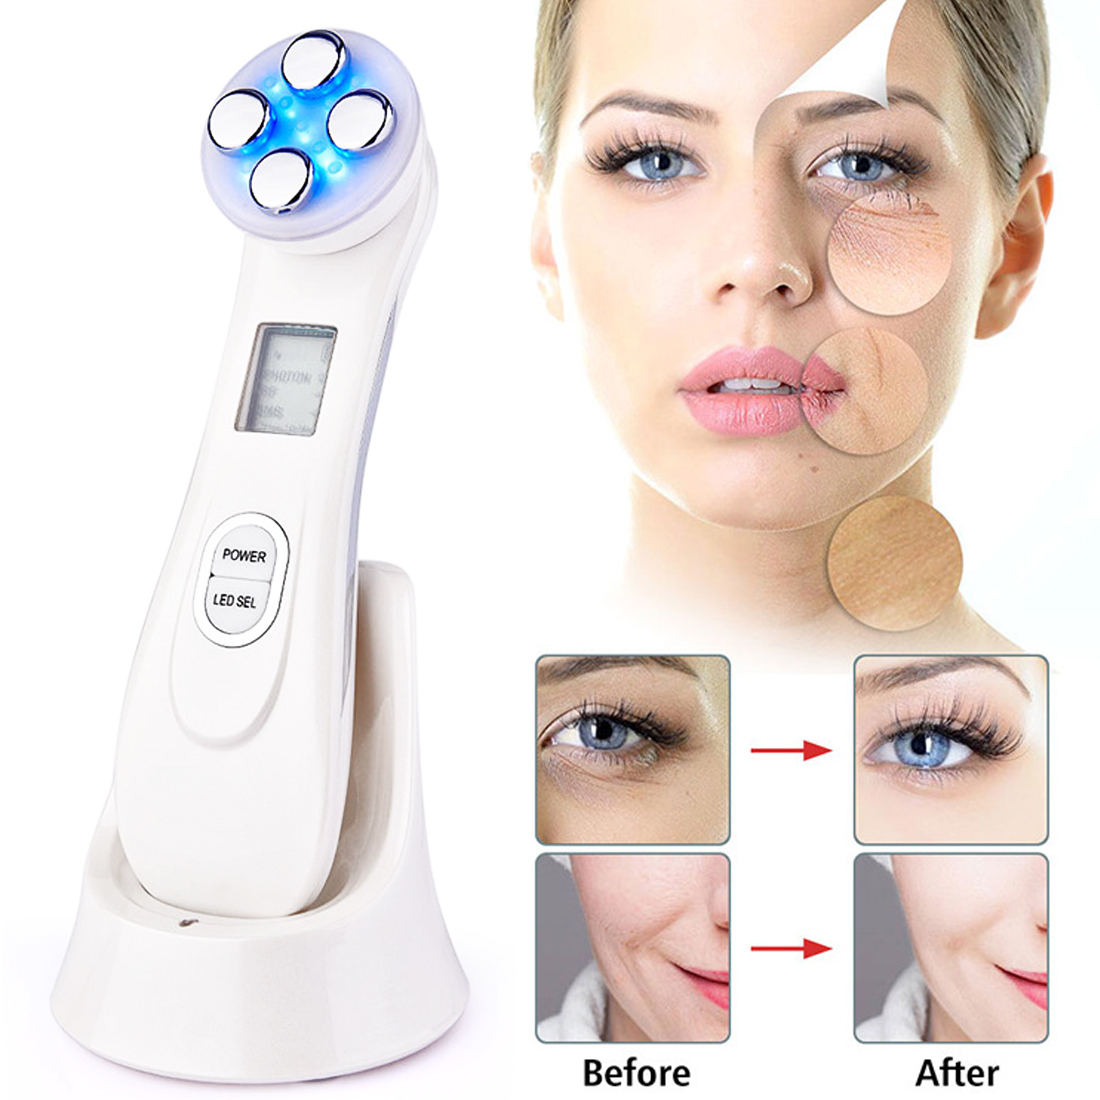 Face Skin EMS Mesotherapy Electroporation RF Radio Frequency LED Photon Face Skin Rejuvenation Remover Wrinkle With Gel